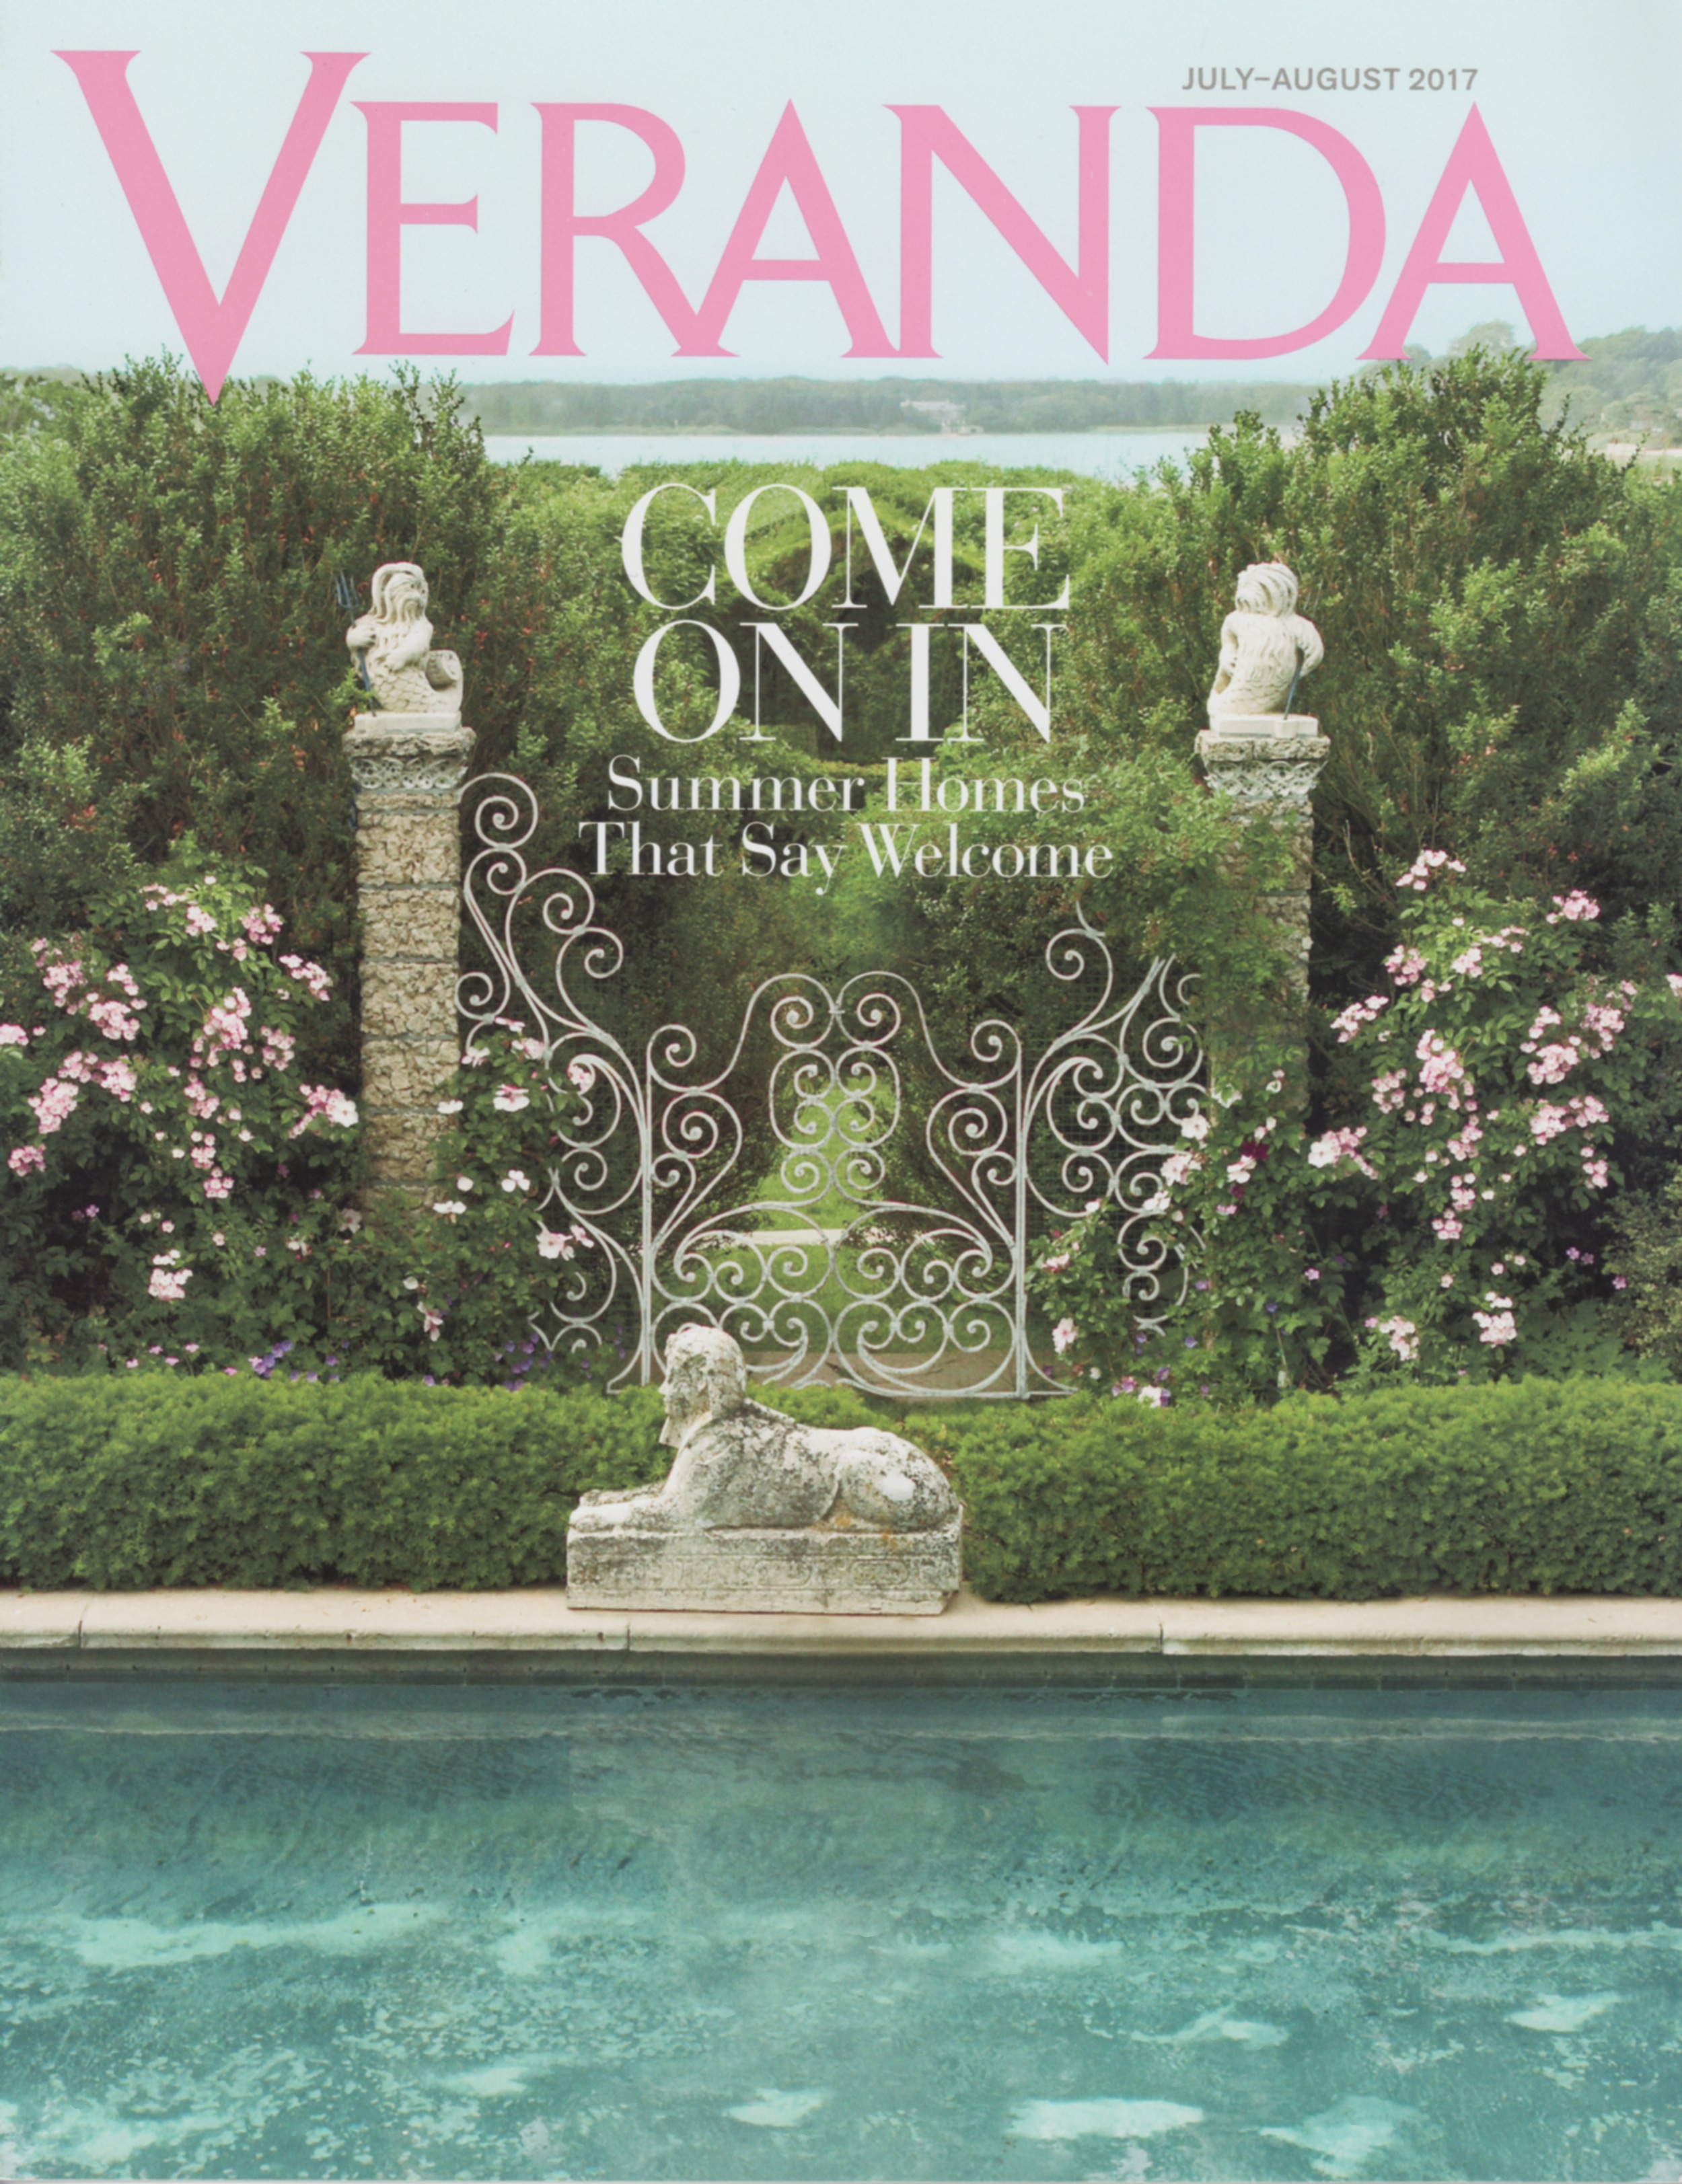 2017 Veranda July 1-2.jpeg